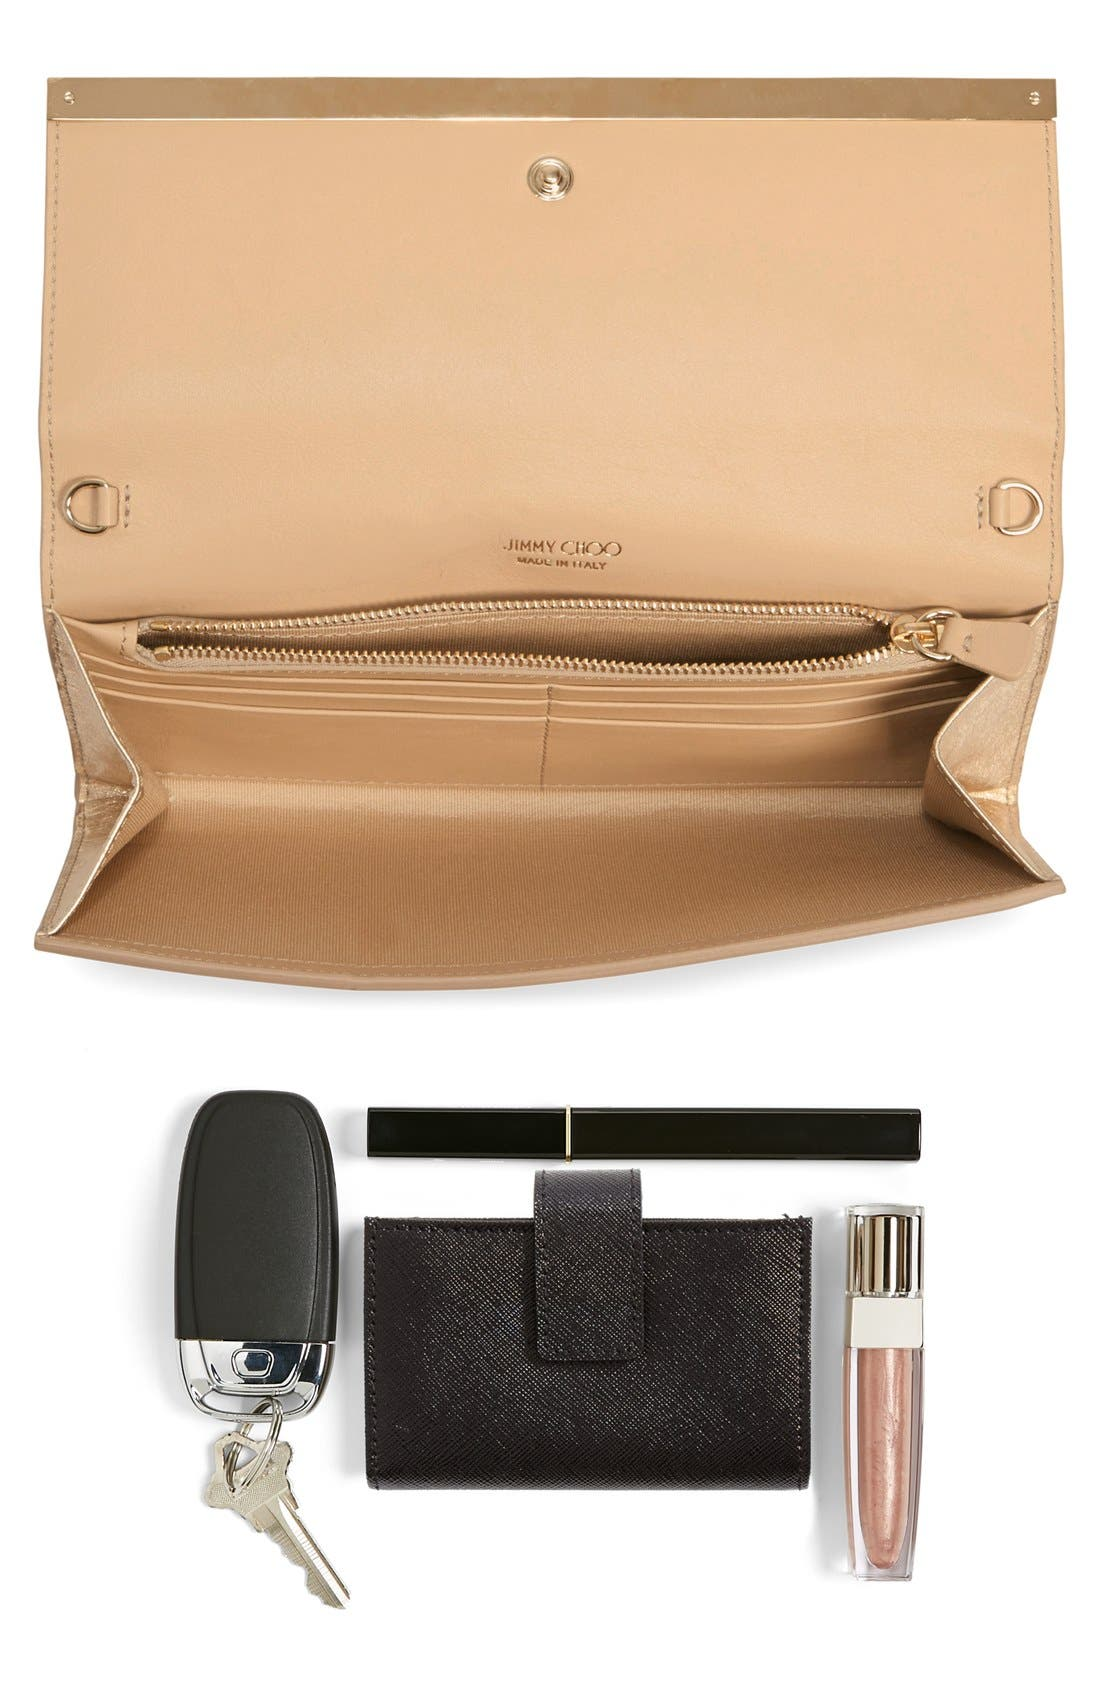 'Milla' Etched Metallic Spazzolato Leather Flap Clutch,                             Alternate thumbnail 7, color,                             Gold